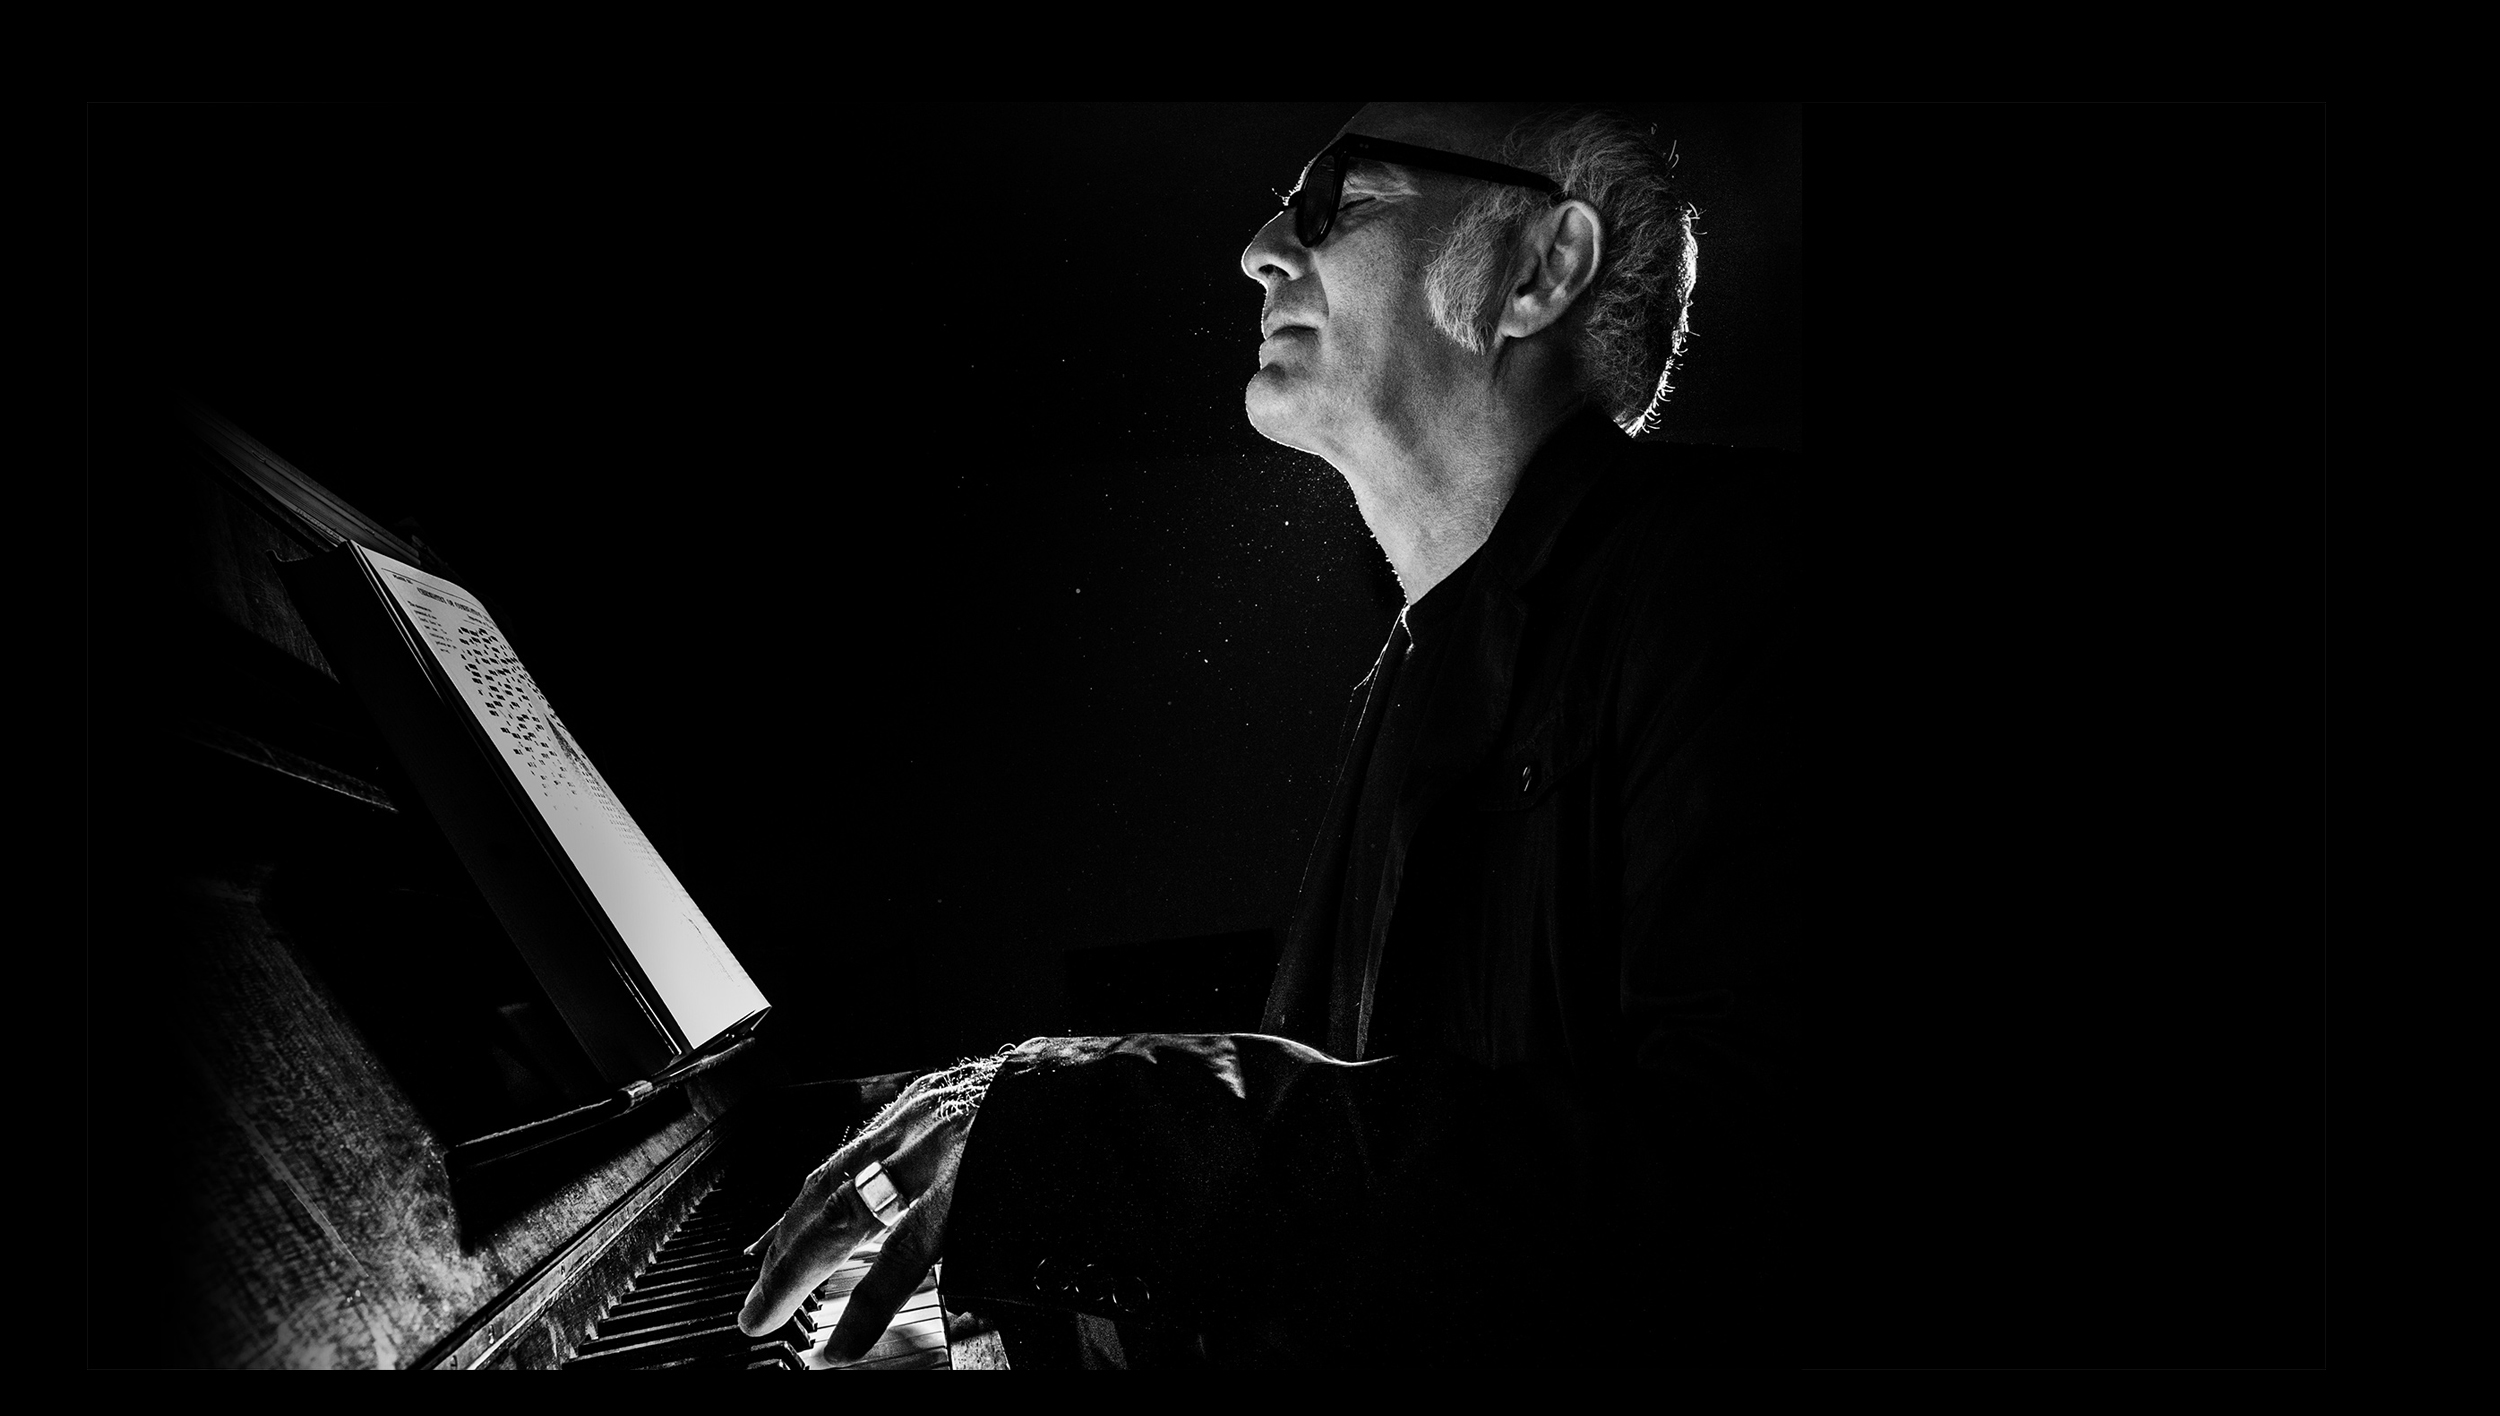 /zh_CN/news/features/a-new-vision-ludovico-einaudi